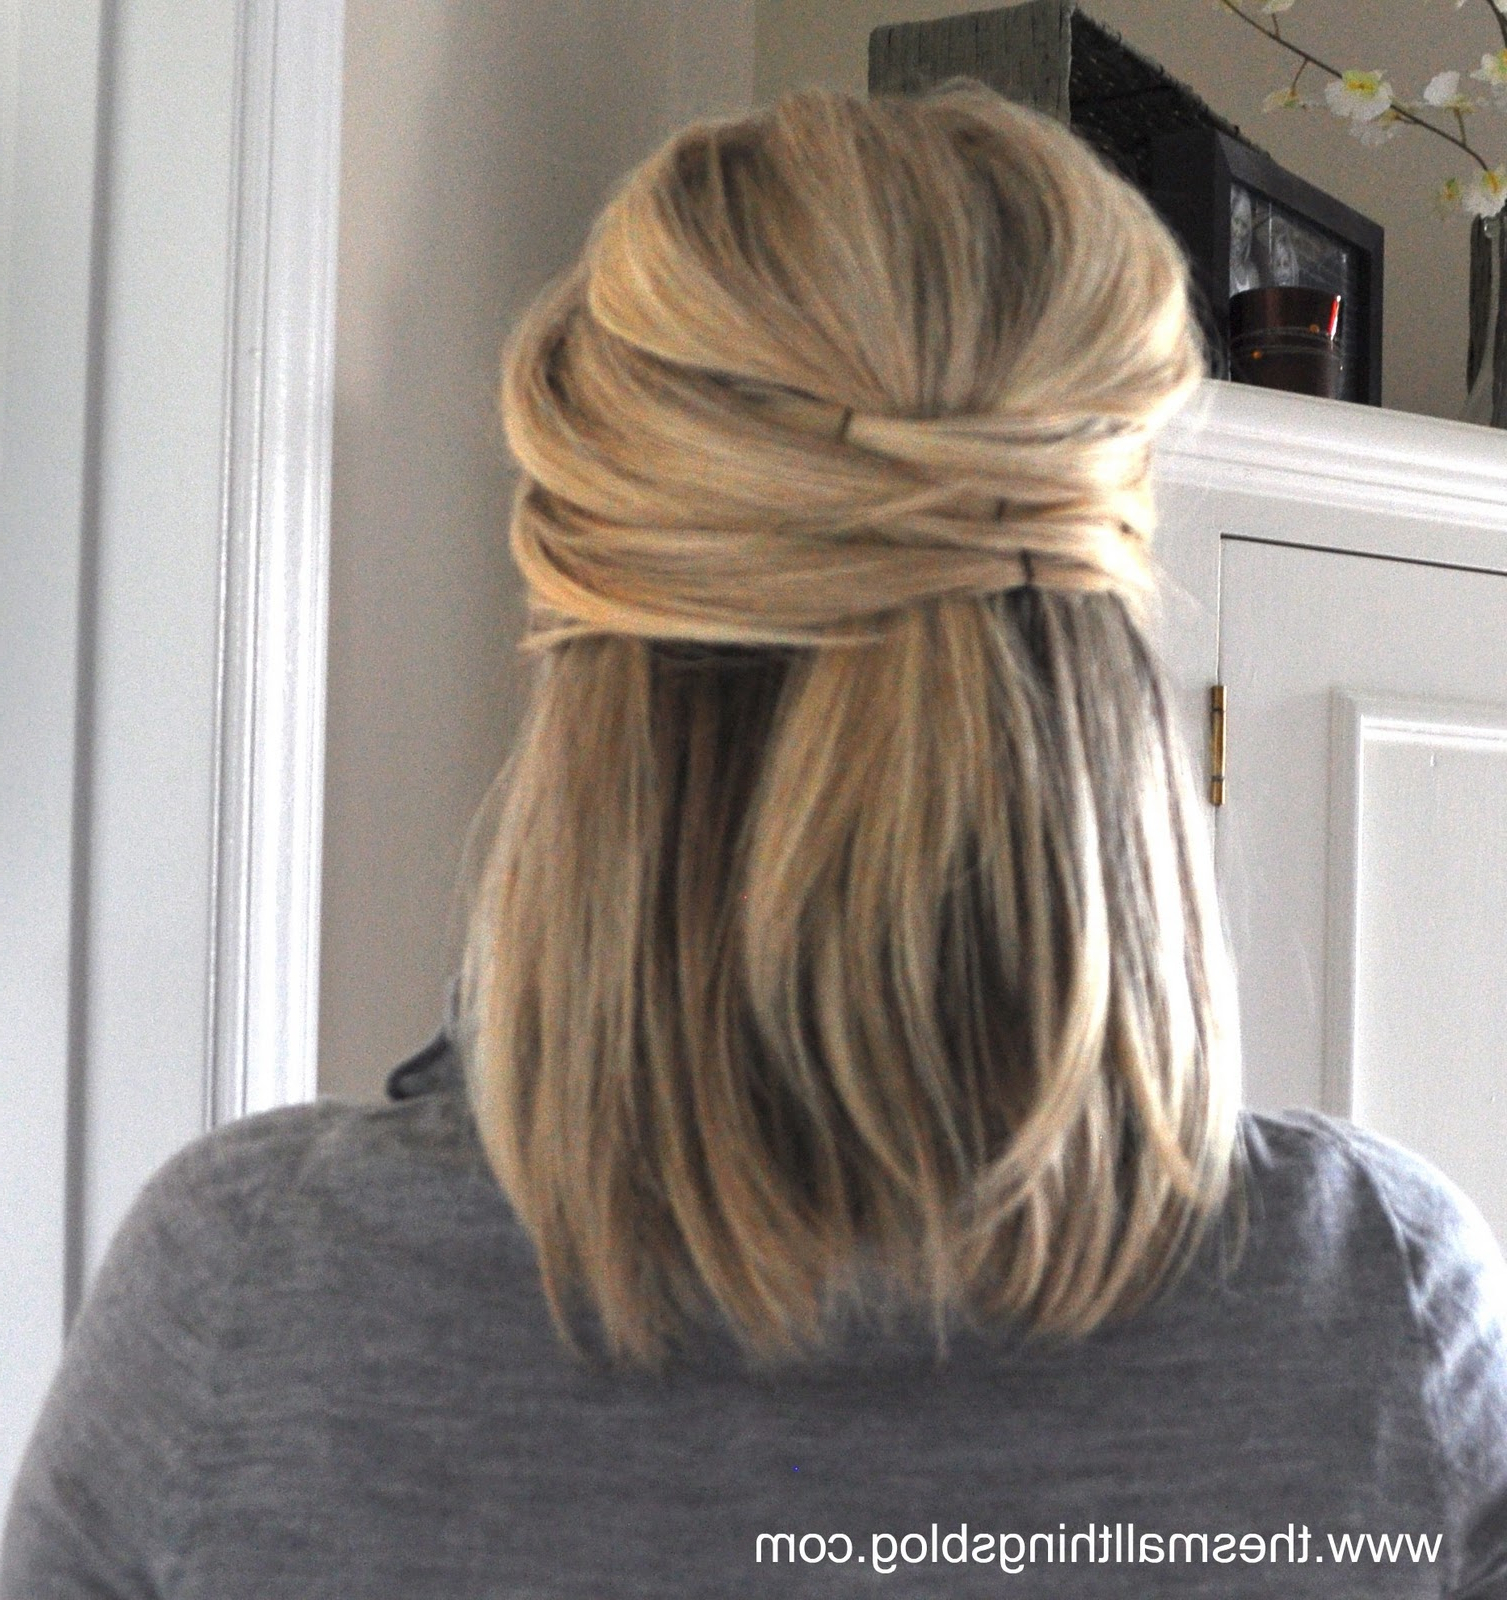 Elegant Half Up – The Small Things Blog Pertaining To Latest Crisscrossed Half Up Wedding Hairstyles (View 6 of 20)